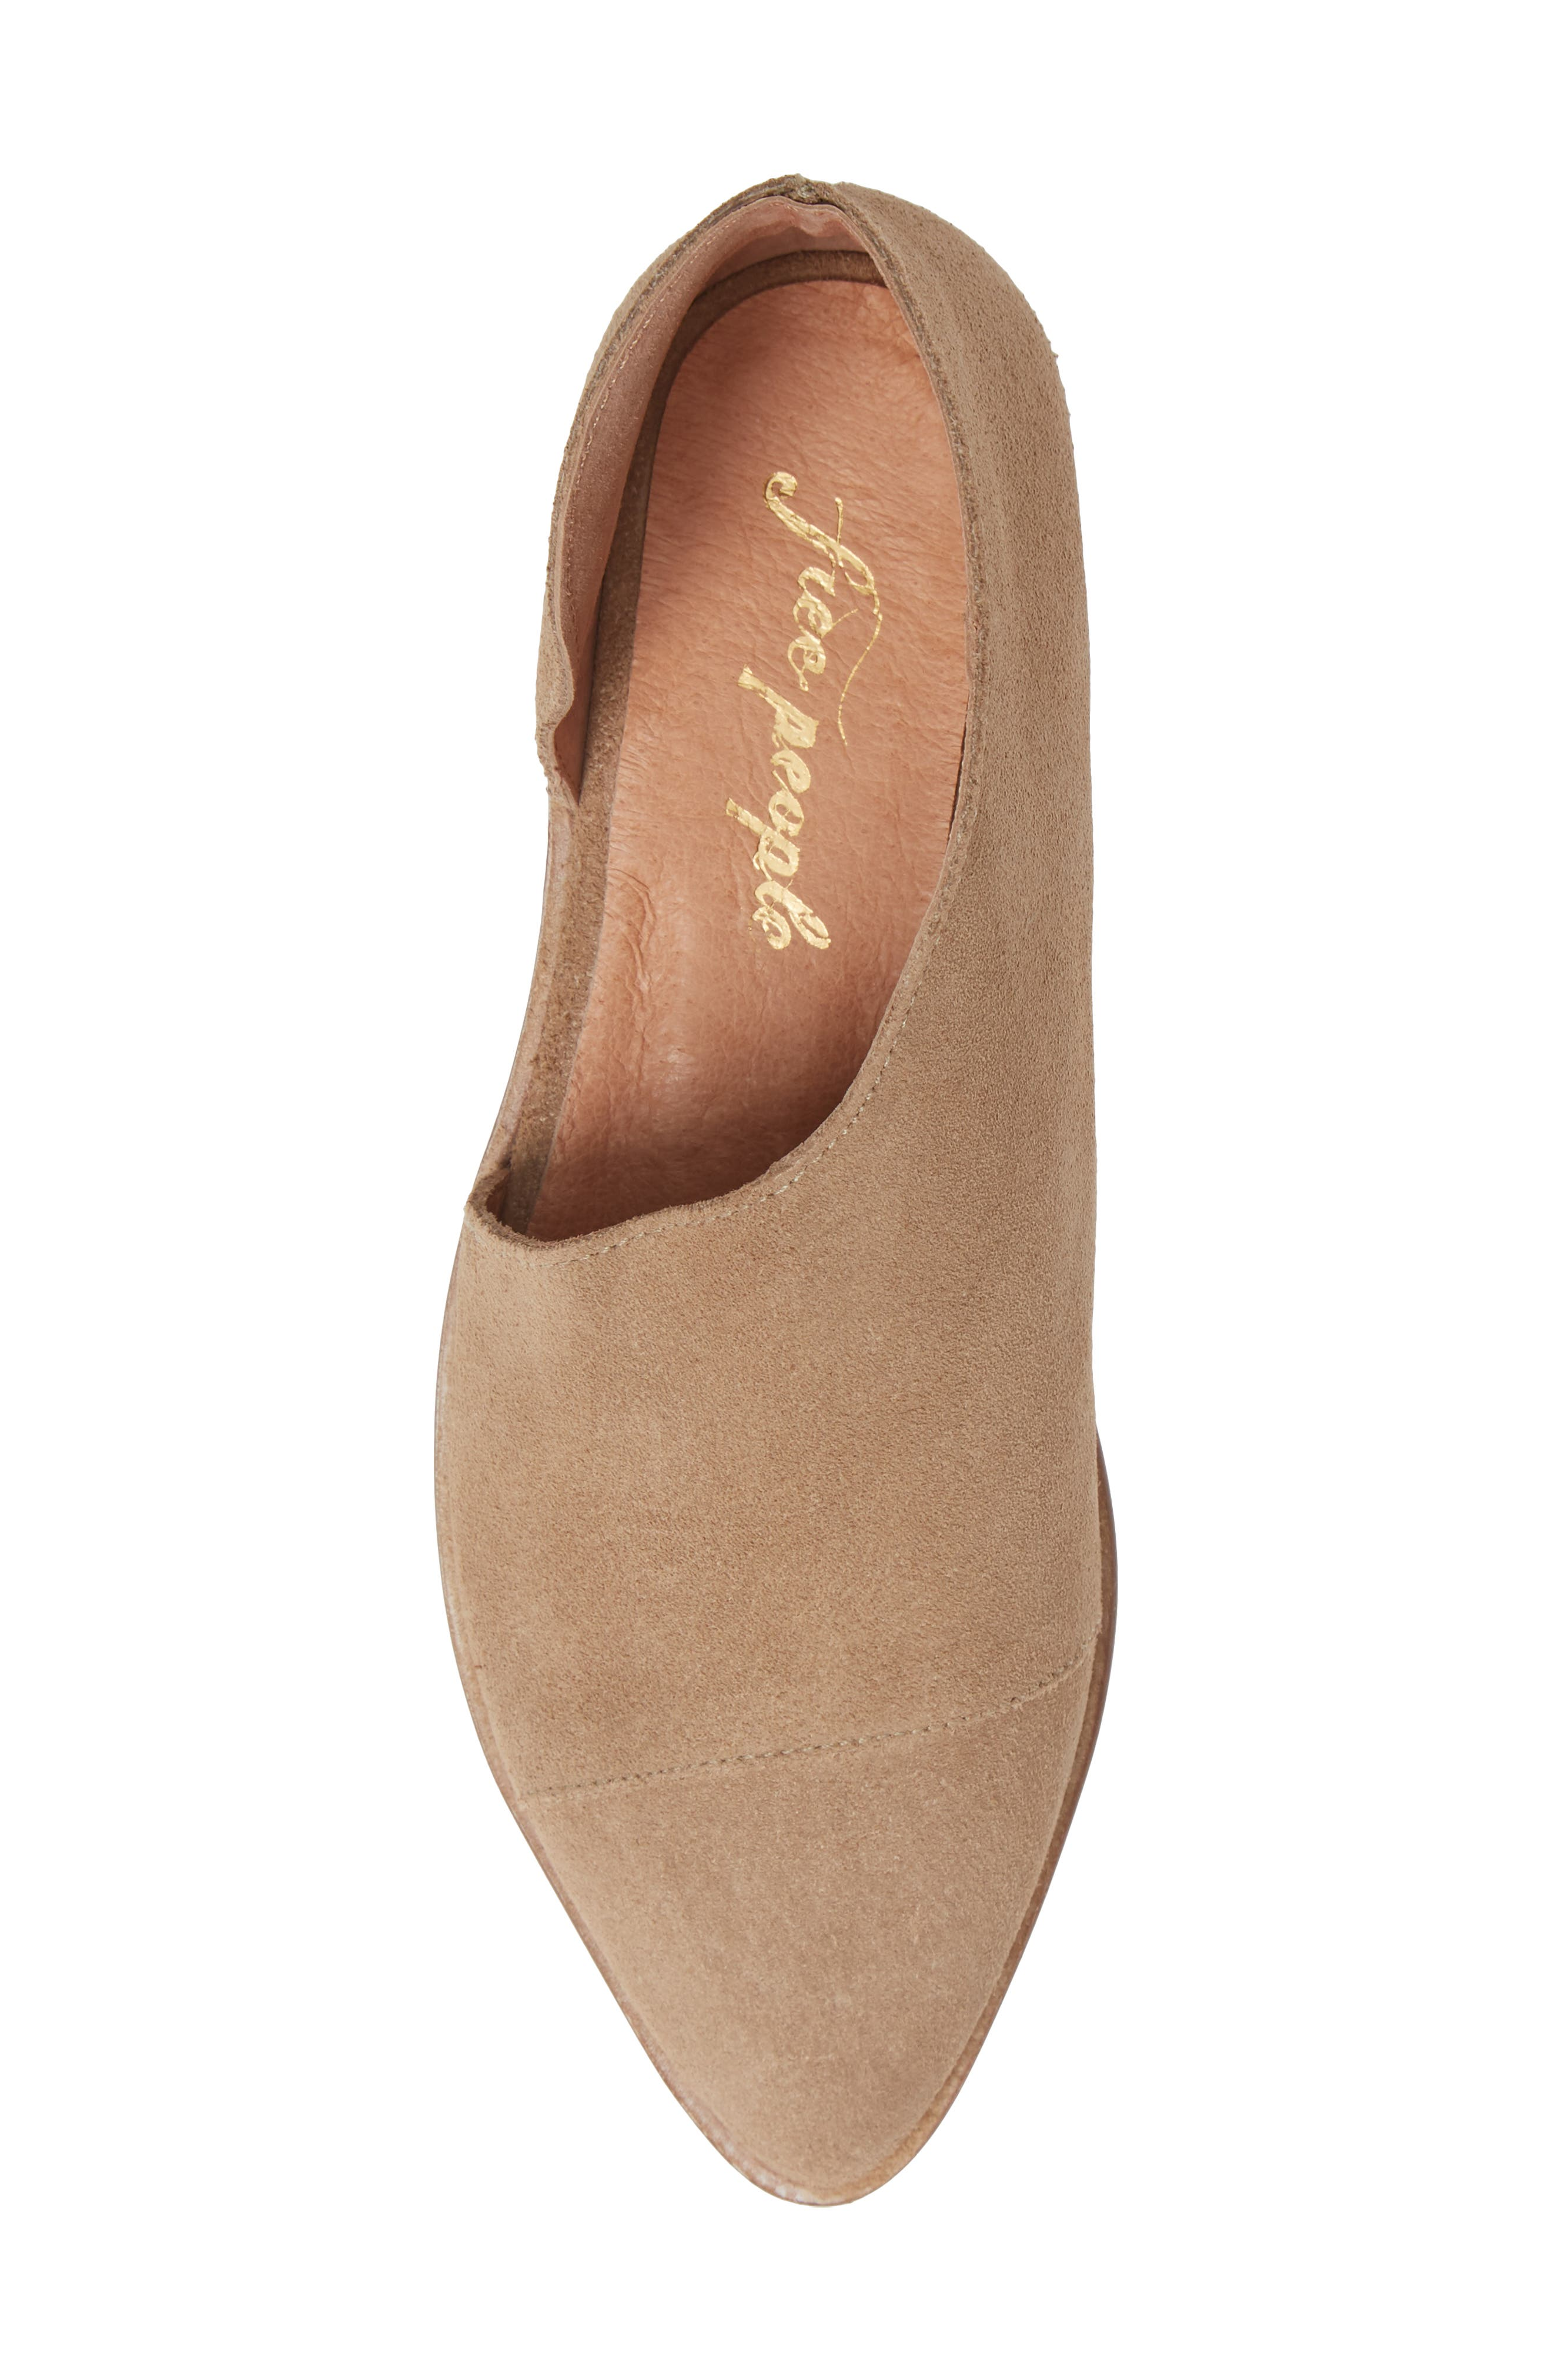 'Royale' Pointy Toe Flat,                             Alternate thumbnail 5, color,                             BEIGE SUEDE